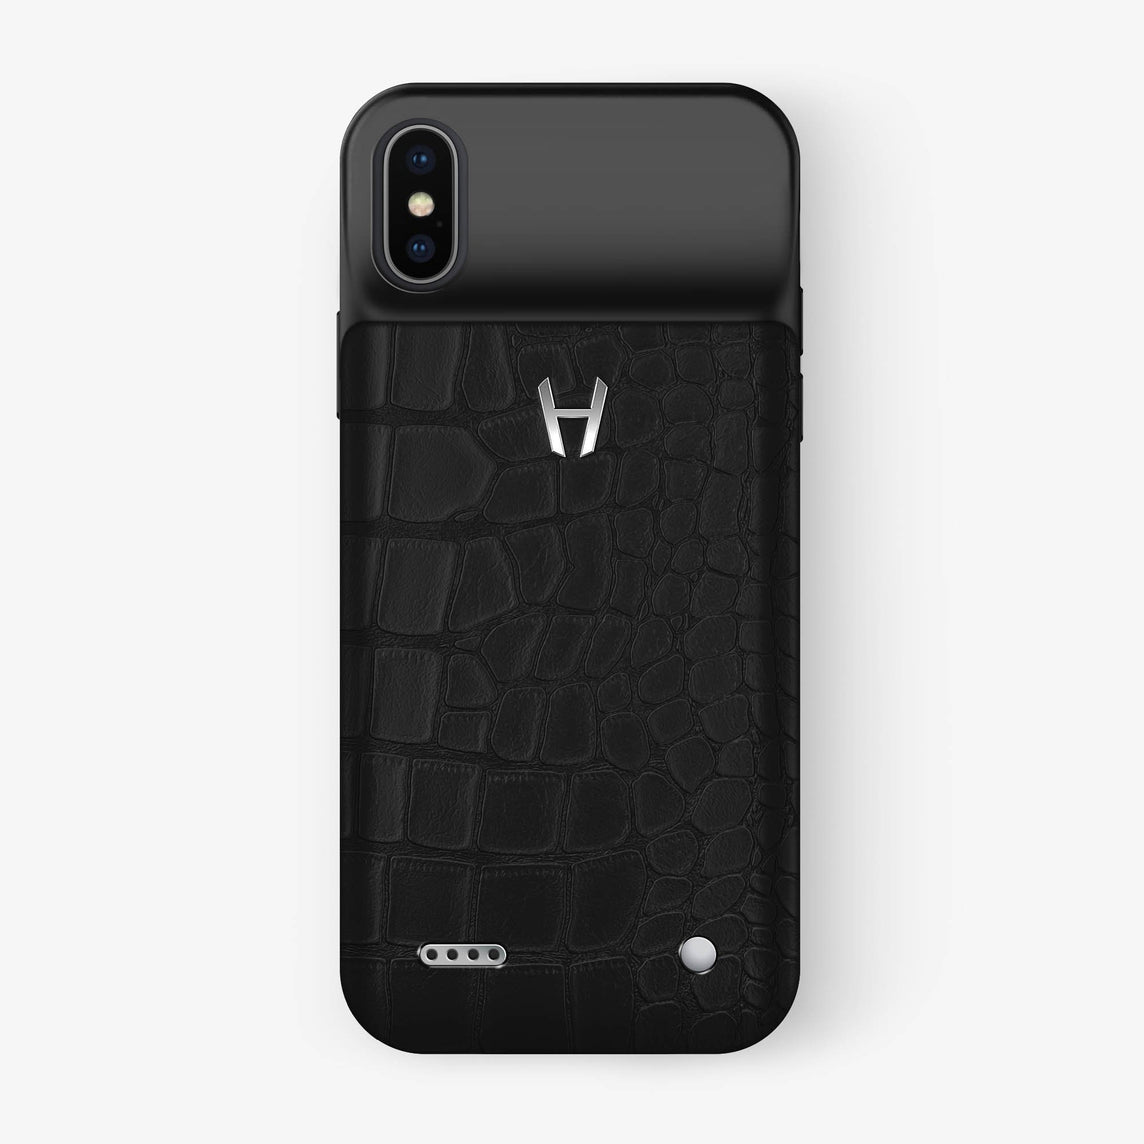 Alligator Battery Case iPhone X/Xs | Phantom Black - Stainless Steel without-personalization